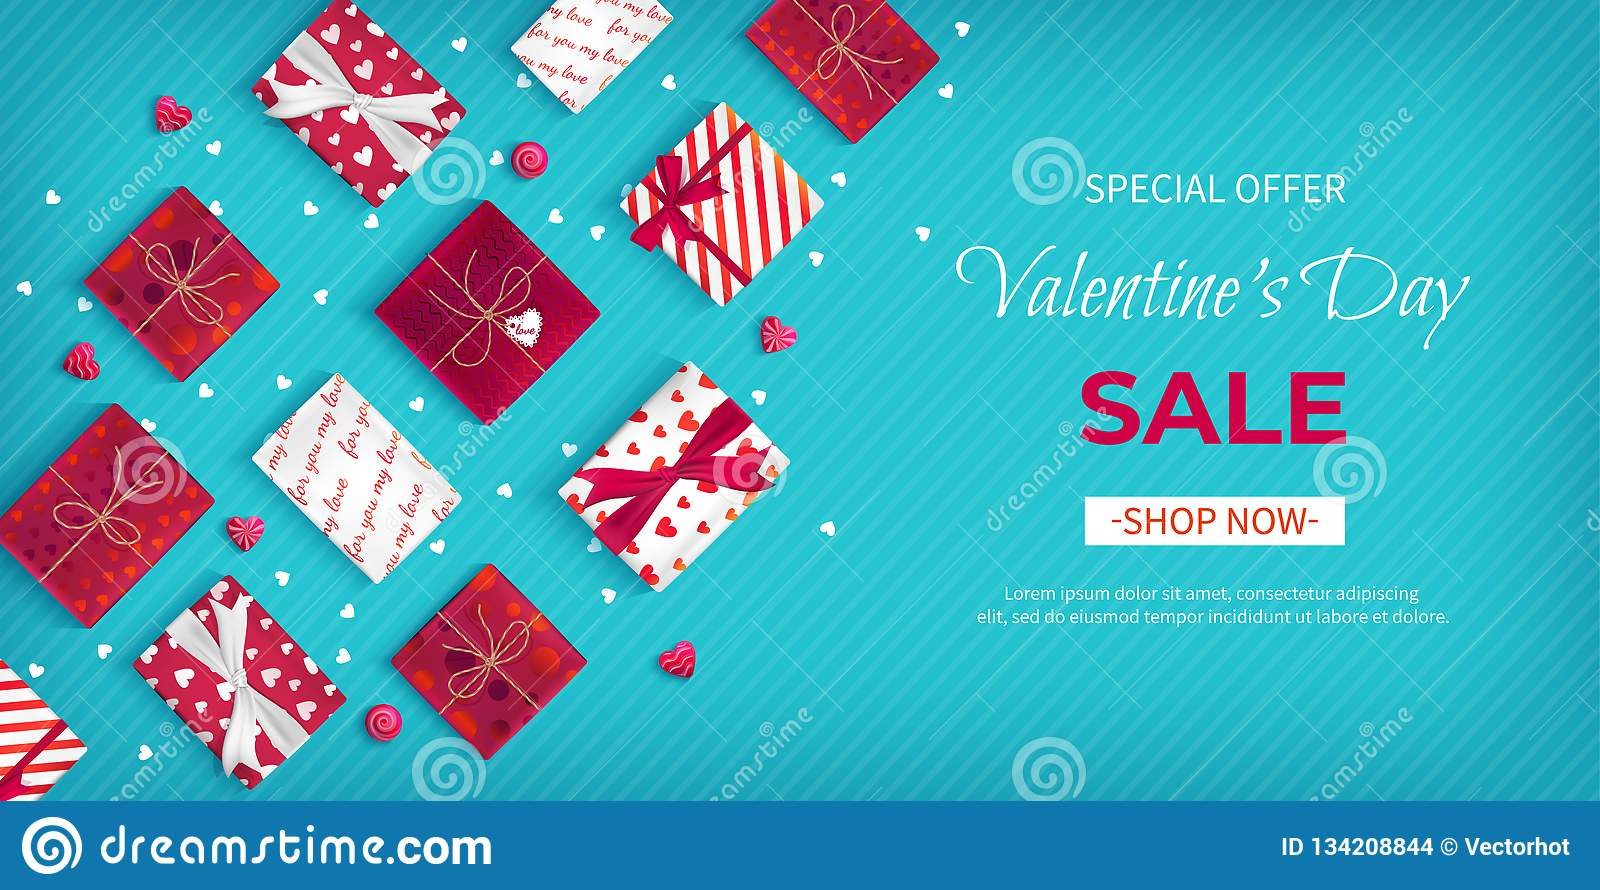 Special offer Valentine`s Day Sale. Discount flyer, big seasonal sale. Horizontal Web Banner with many holiday gift Boxes